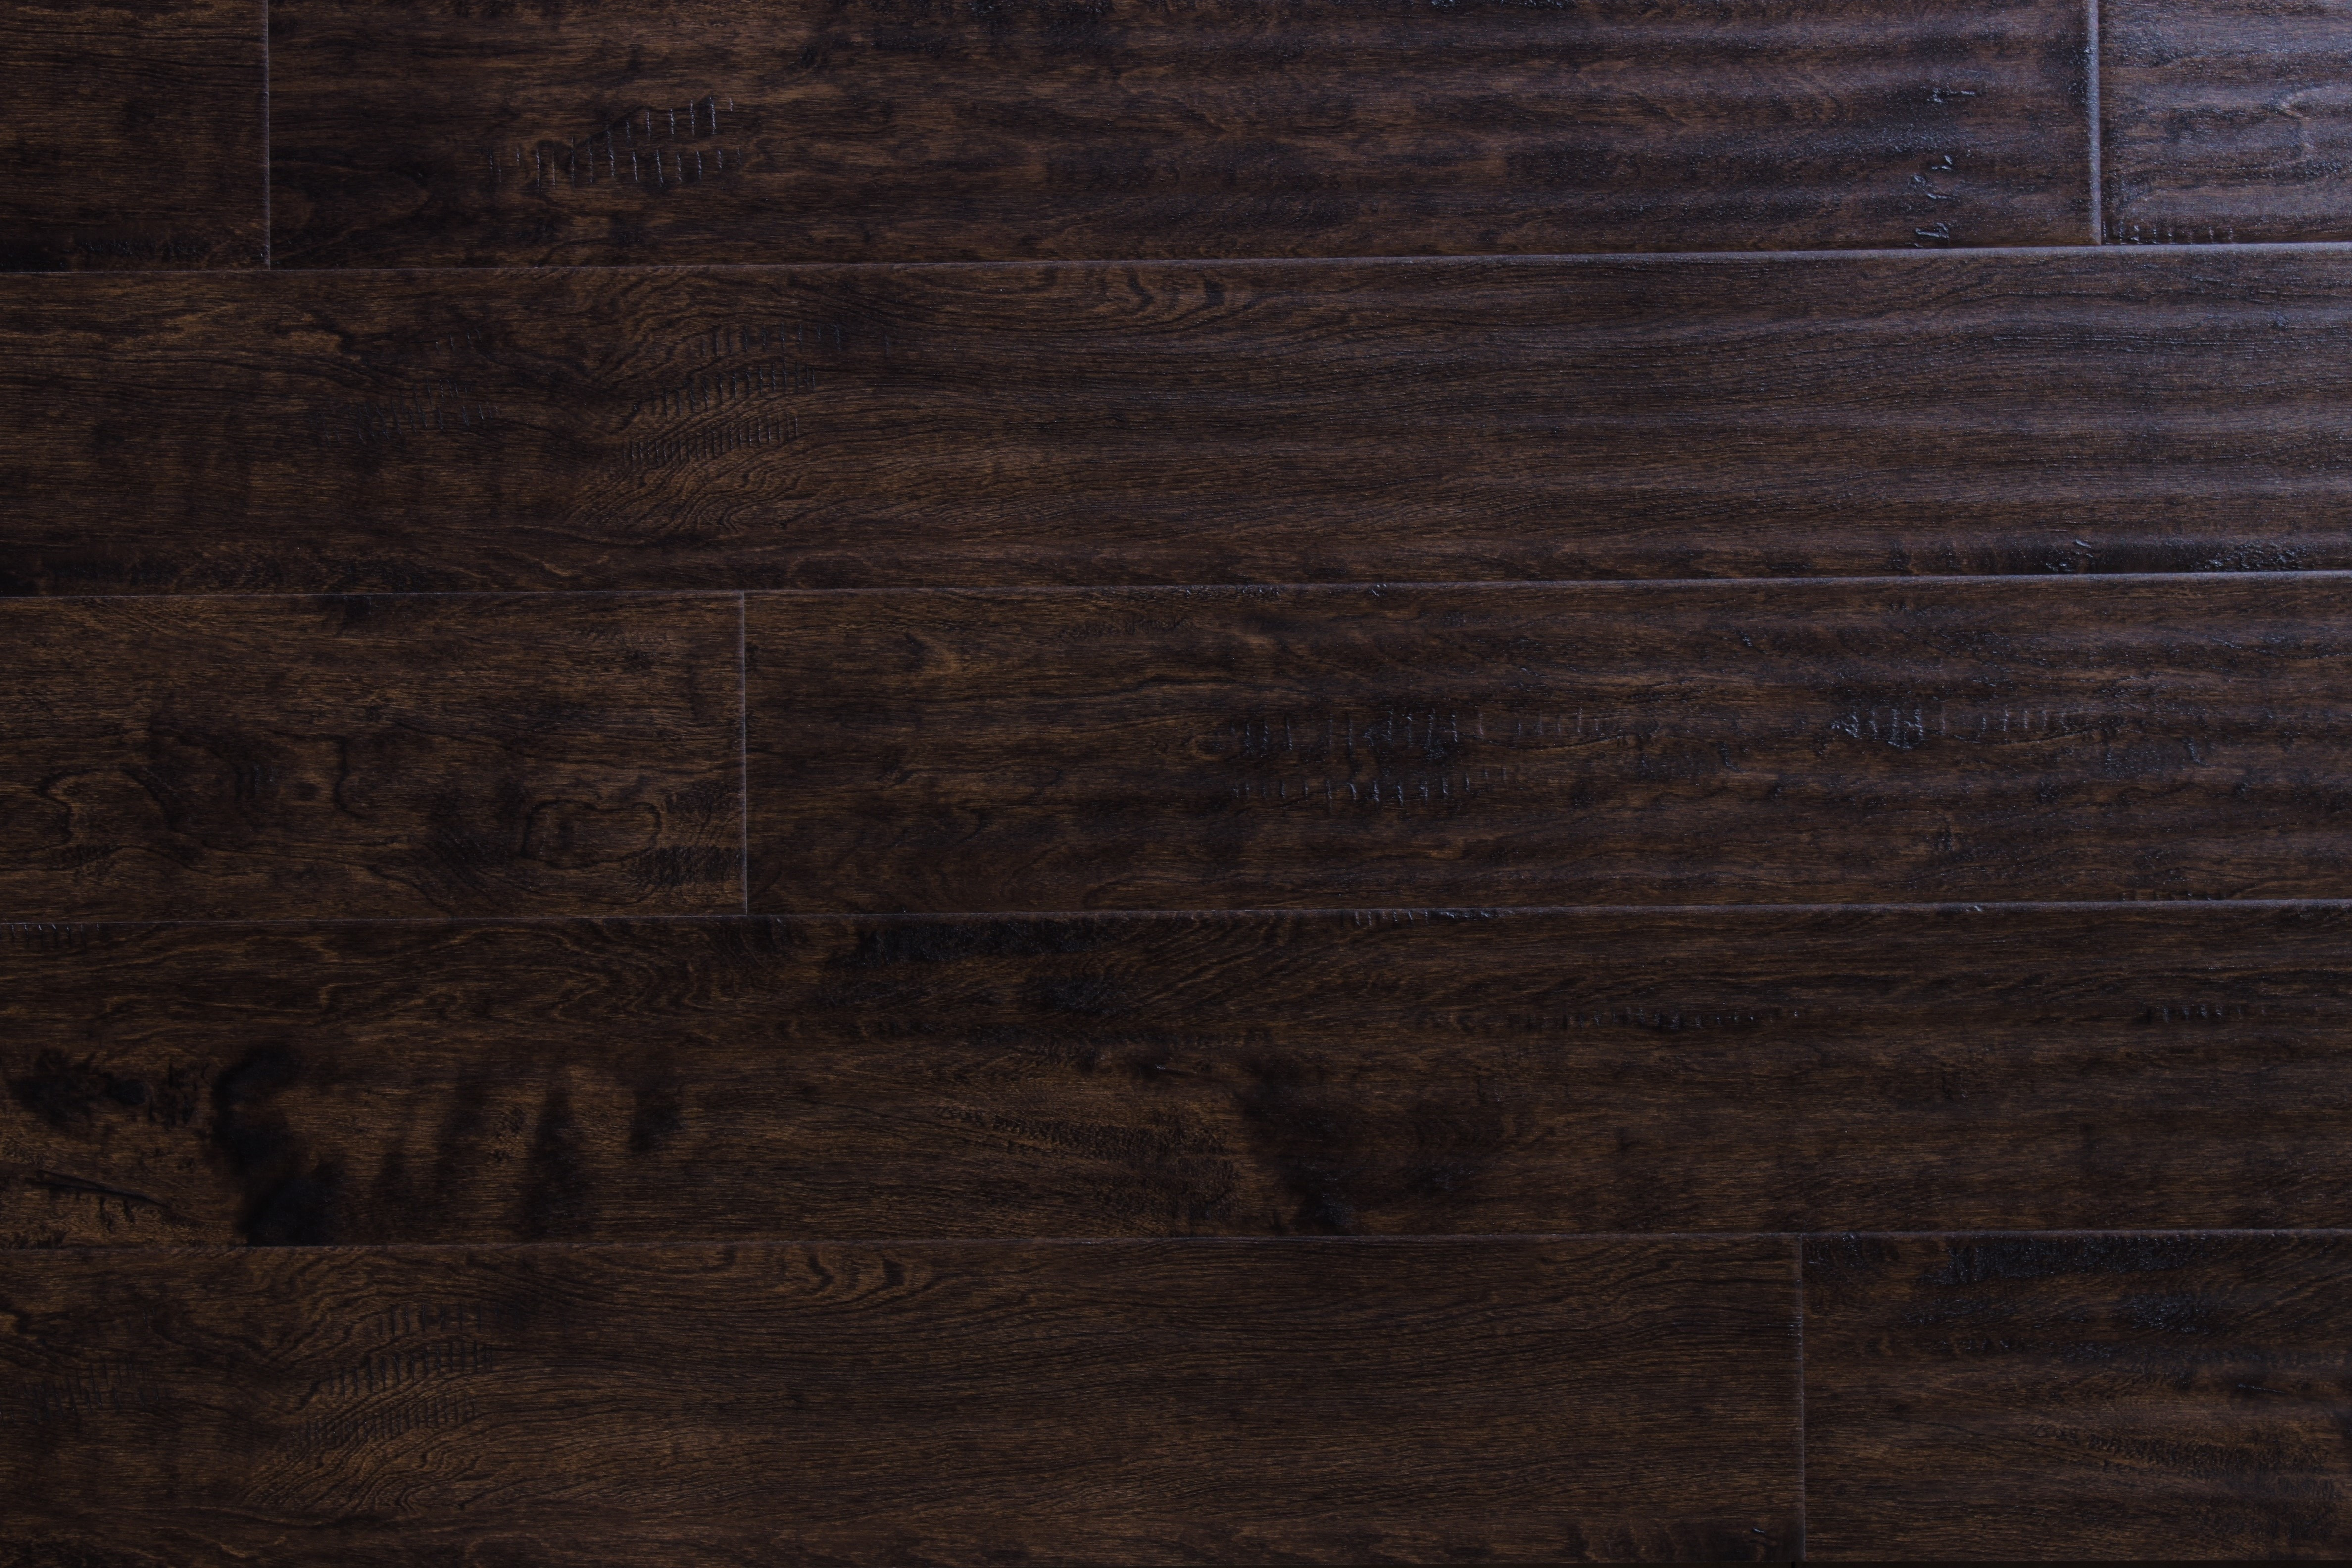 how much does it cost to install hardwood floors of wood flooring free samples available at builddirecta in tailor multi gb 5874277bb8d3c